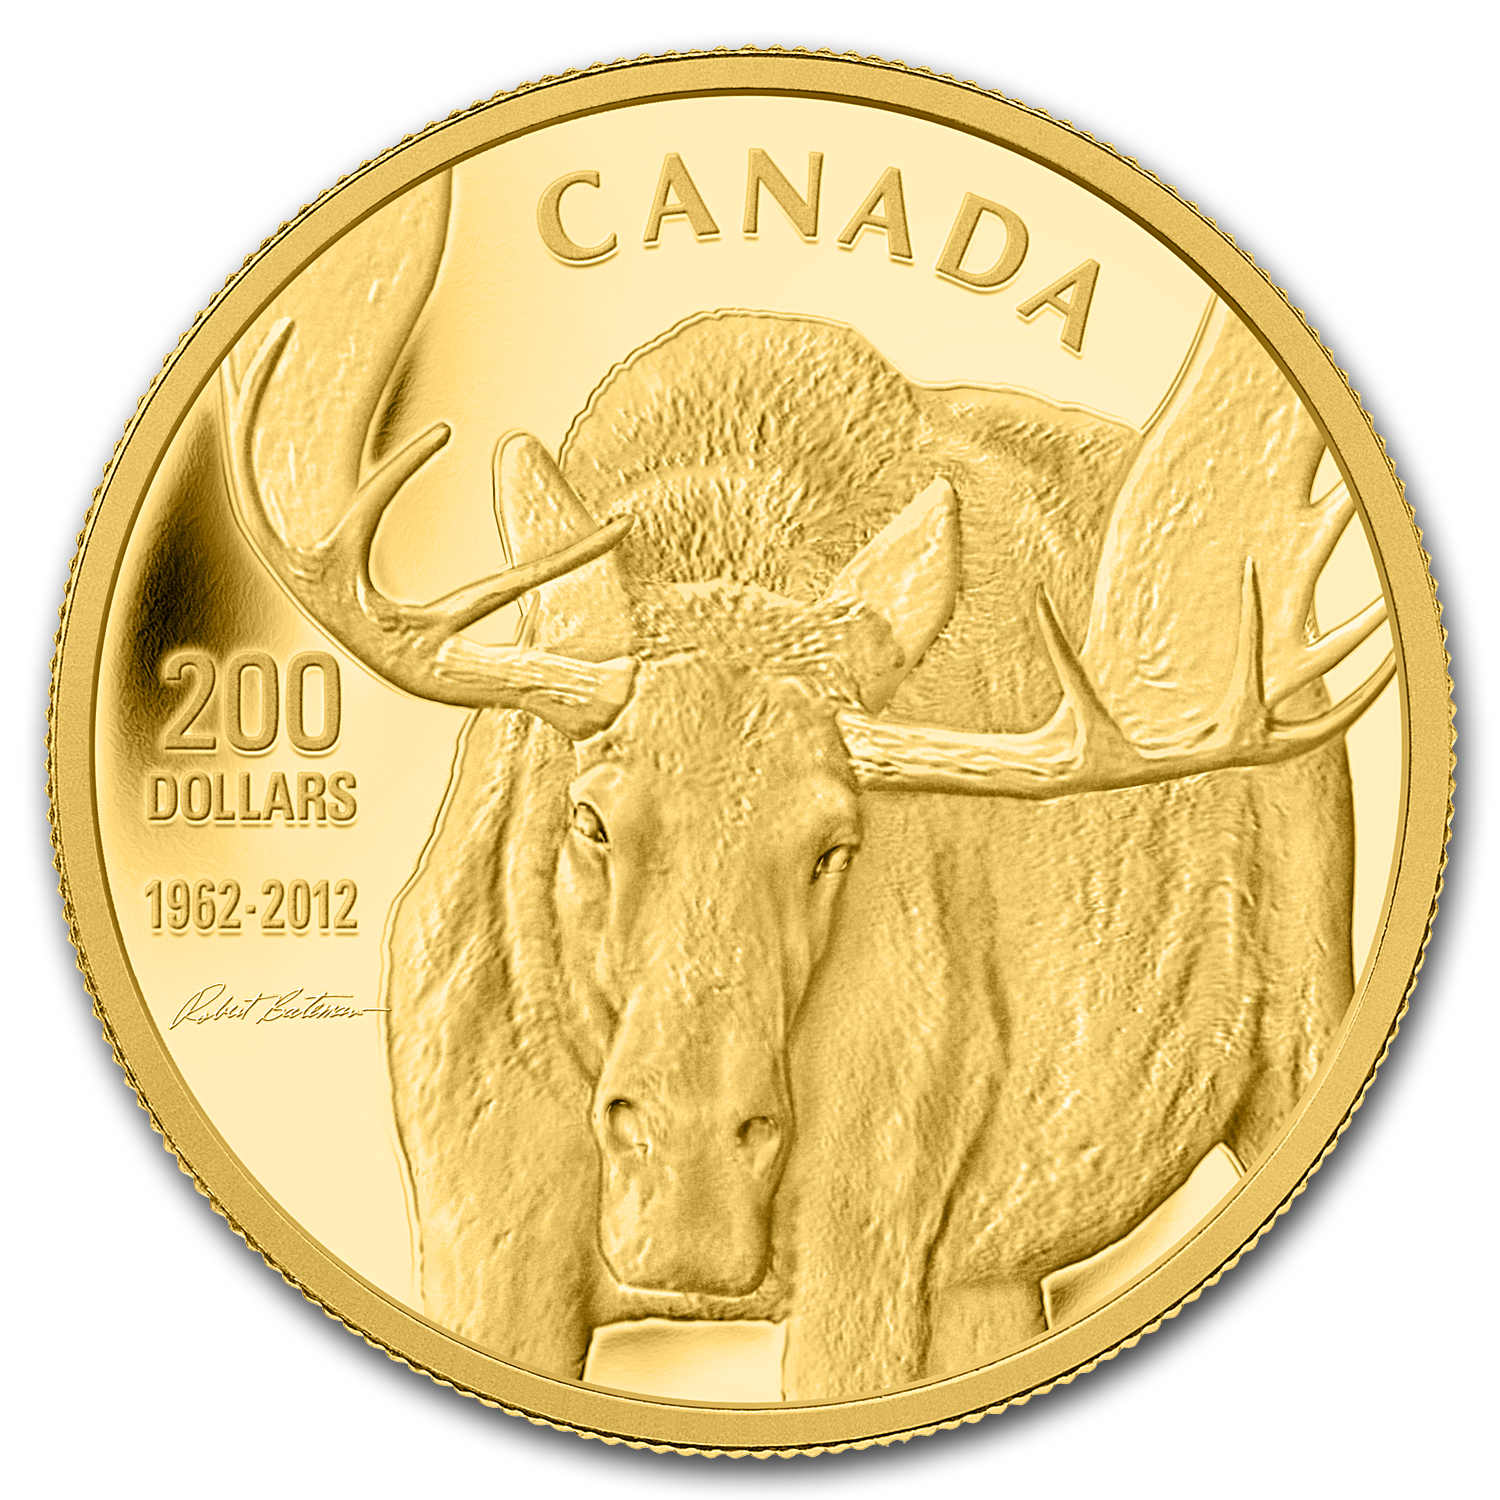 2012 Canada 1 oz Proof Gold $200 Moose Bateman's The Challenge